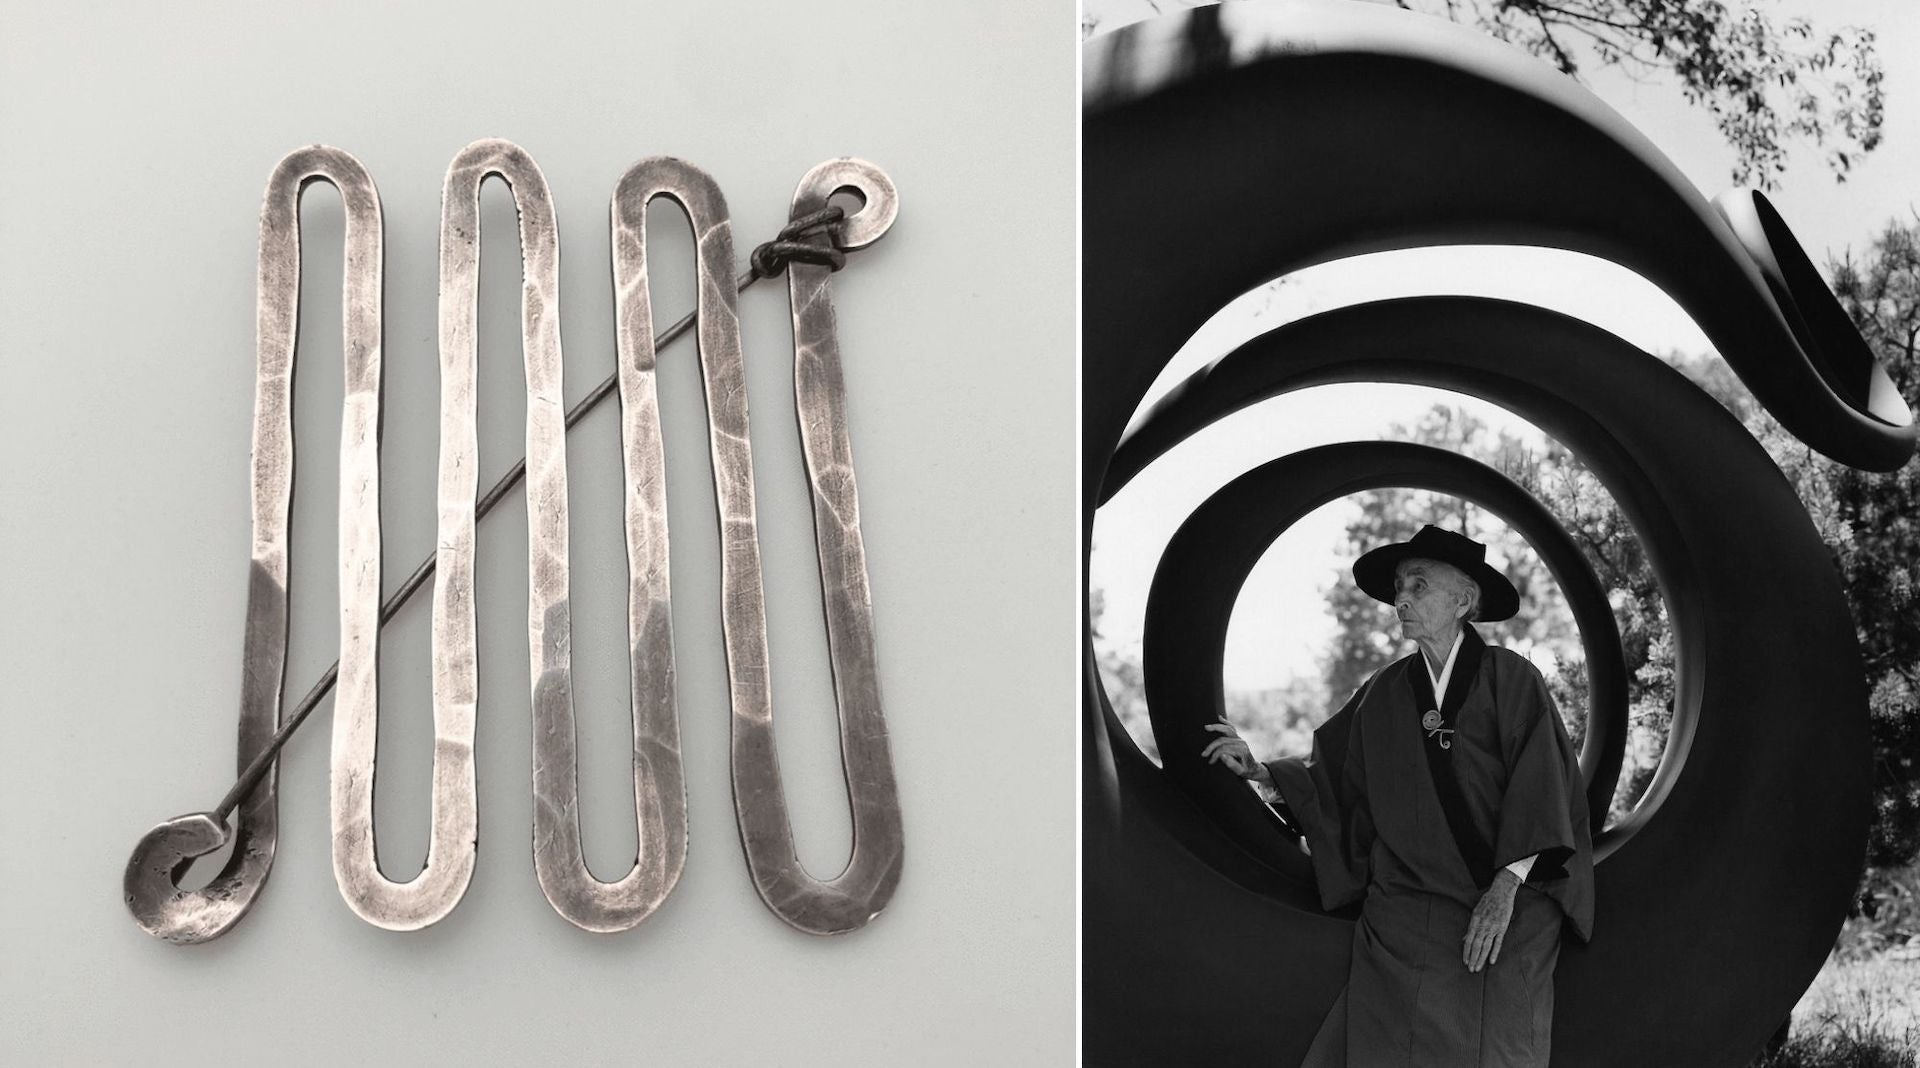 Unique Silver Vermicular Brooch by Alexander Calder, 1949. Georgia O'Keefe wearing a brooch by Calder, photographed by Bruce Weber. Photos courtesy of Didier Ltd.